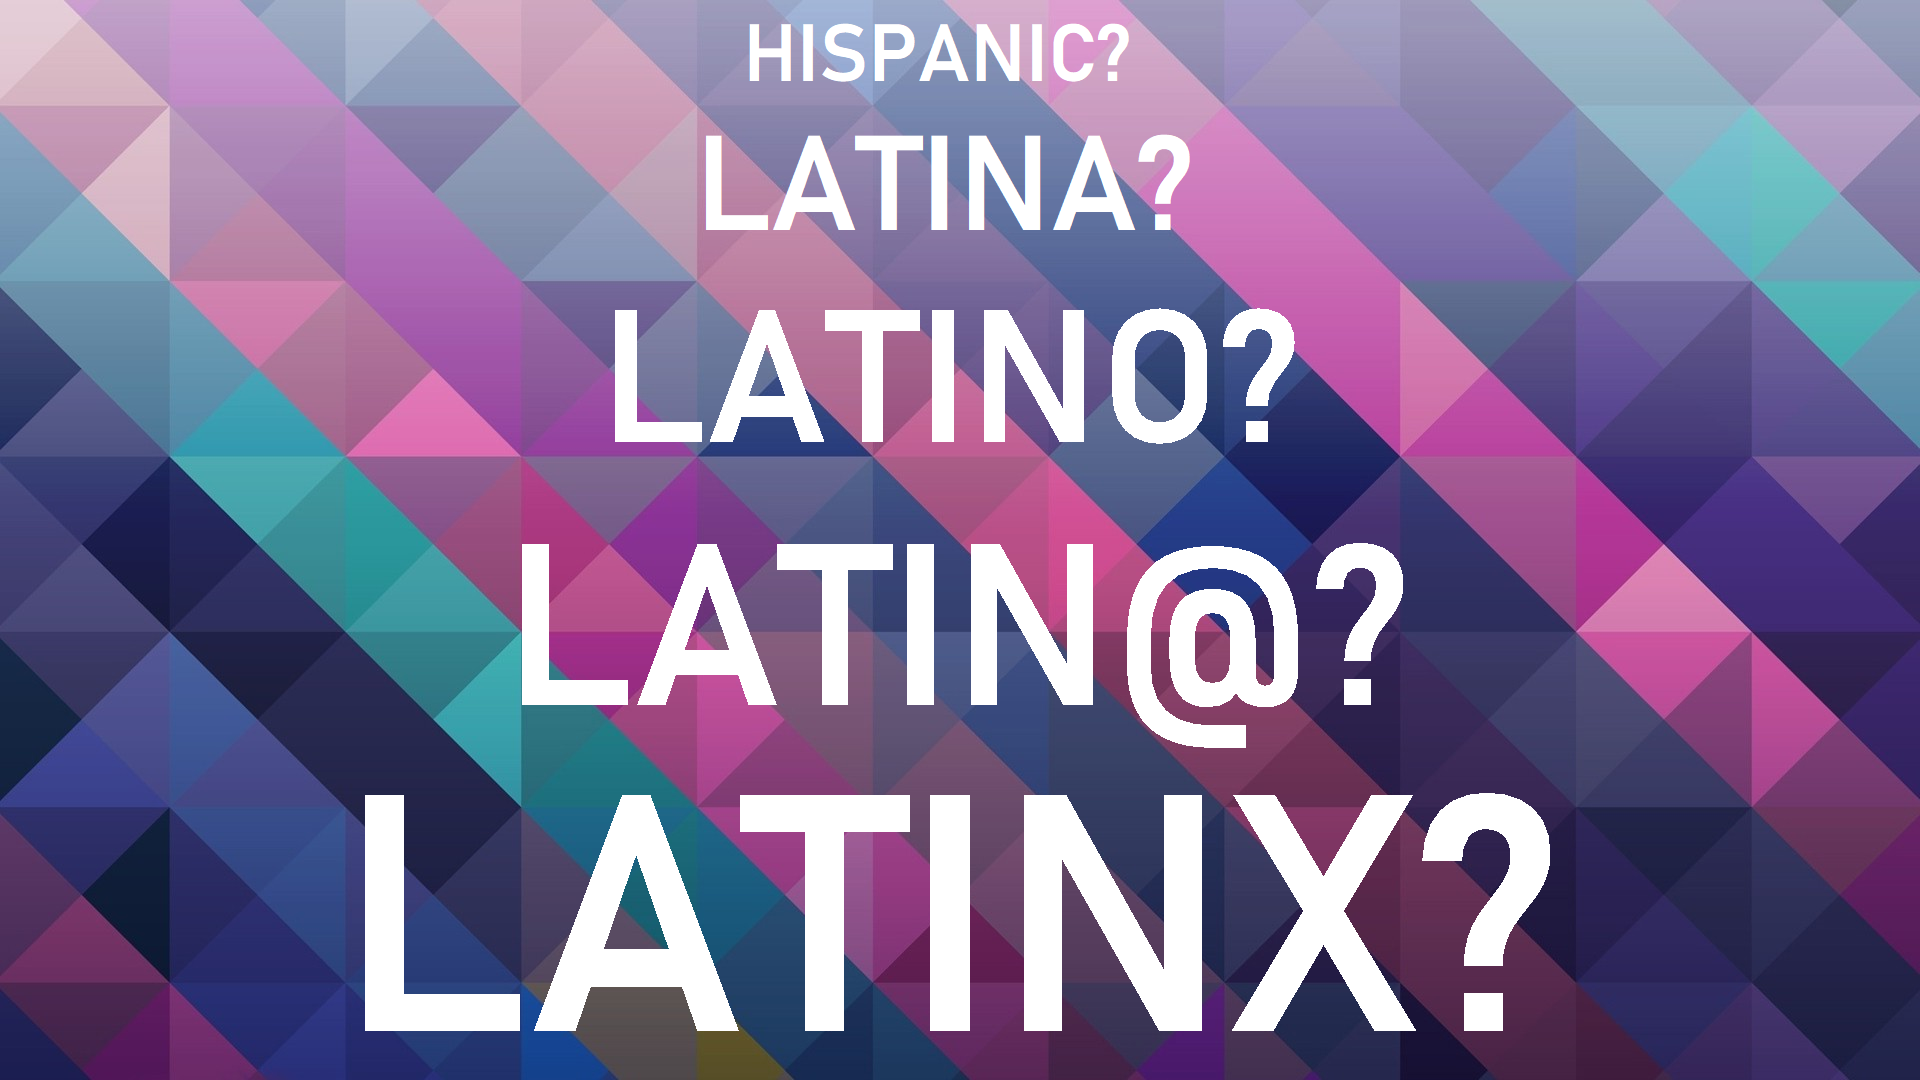 Brownbag Roundtable: To Be or Not To Be Latinx?